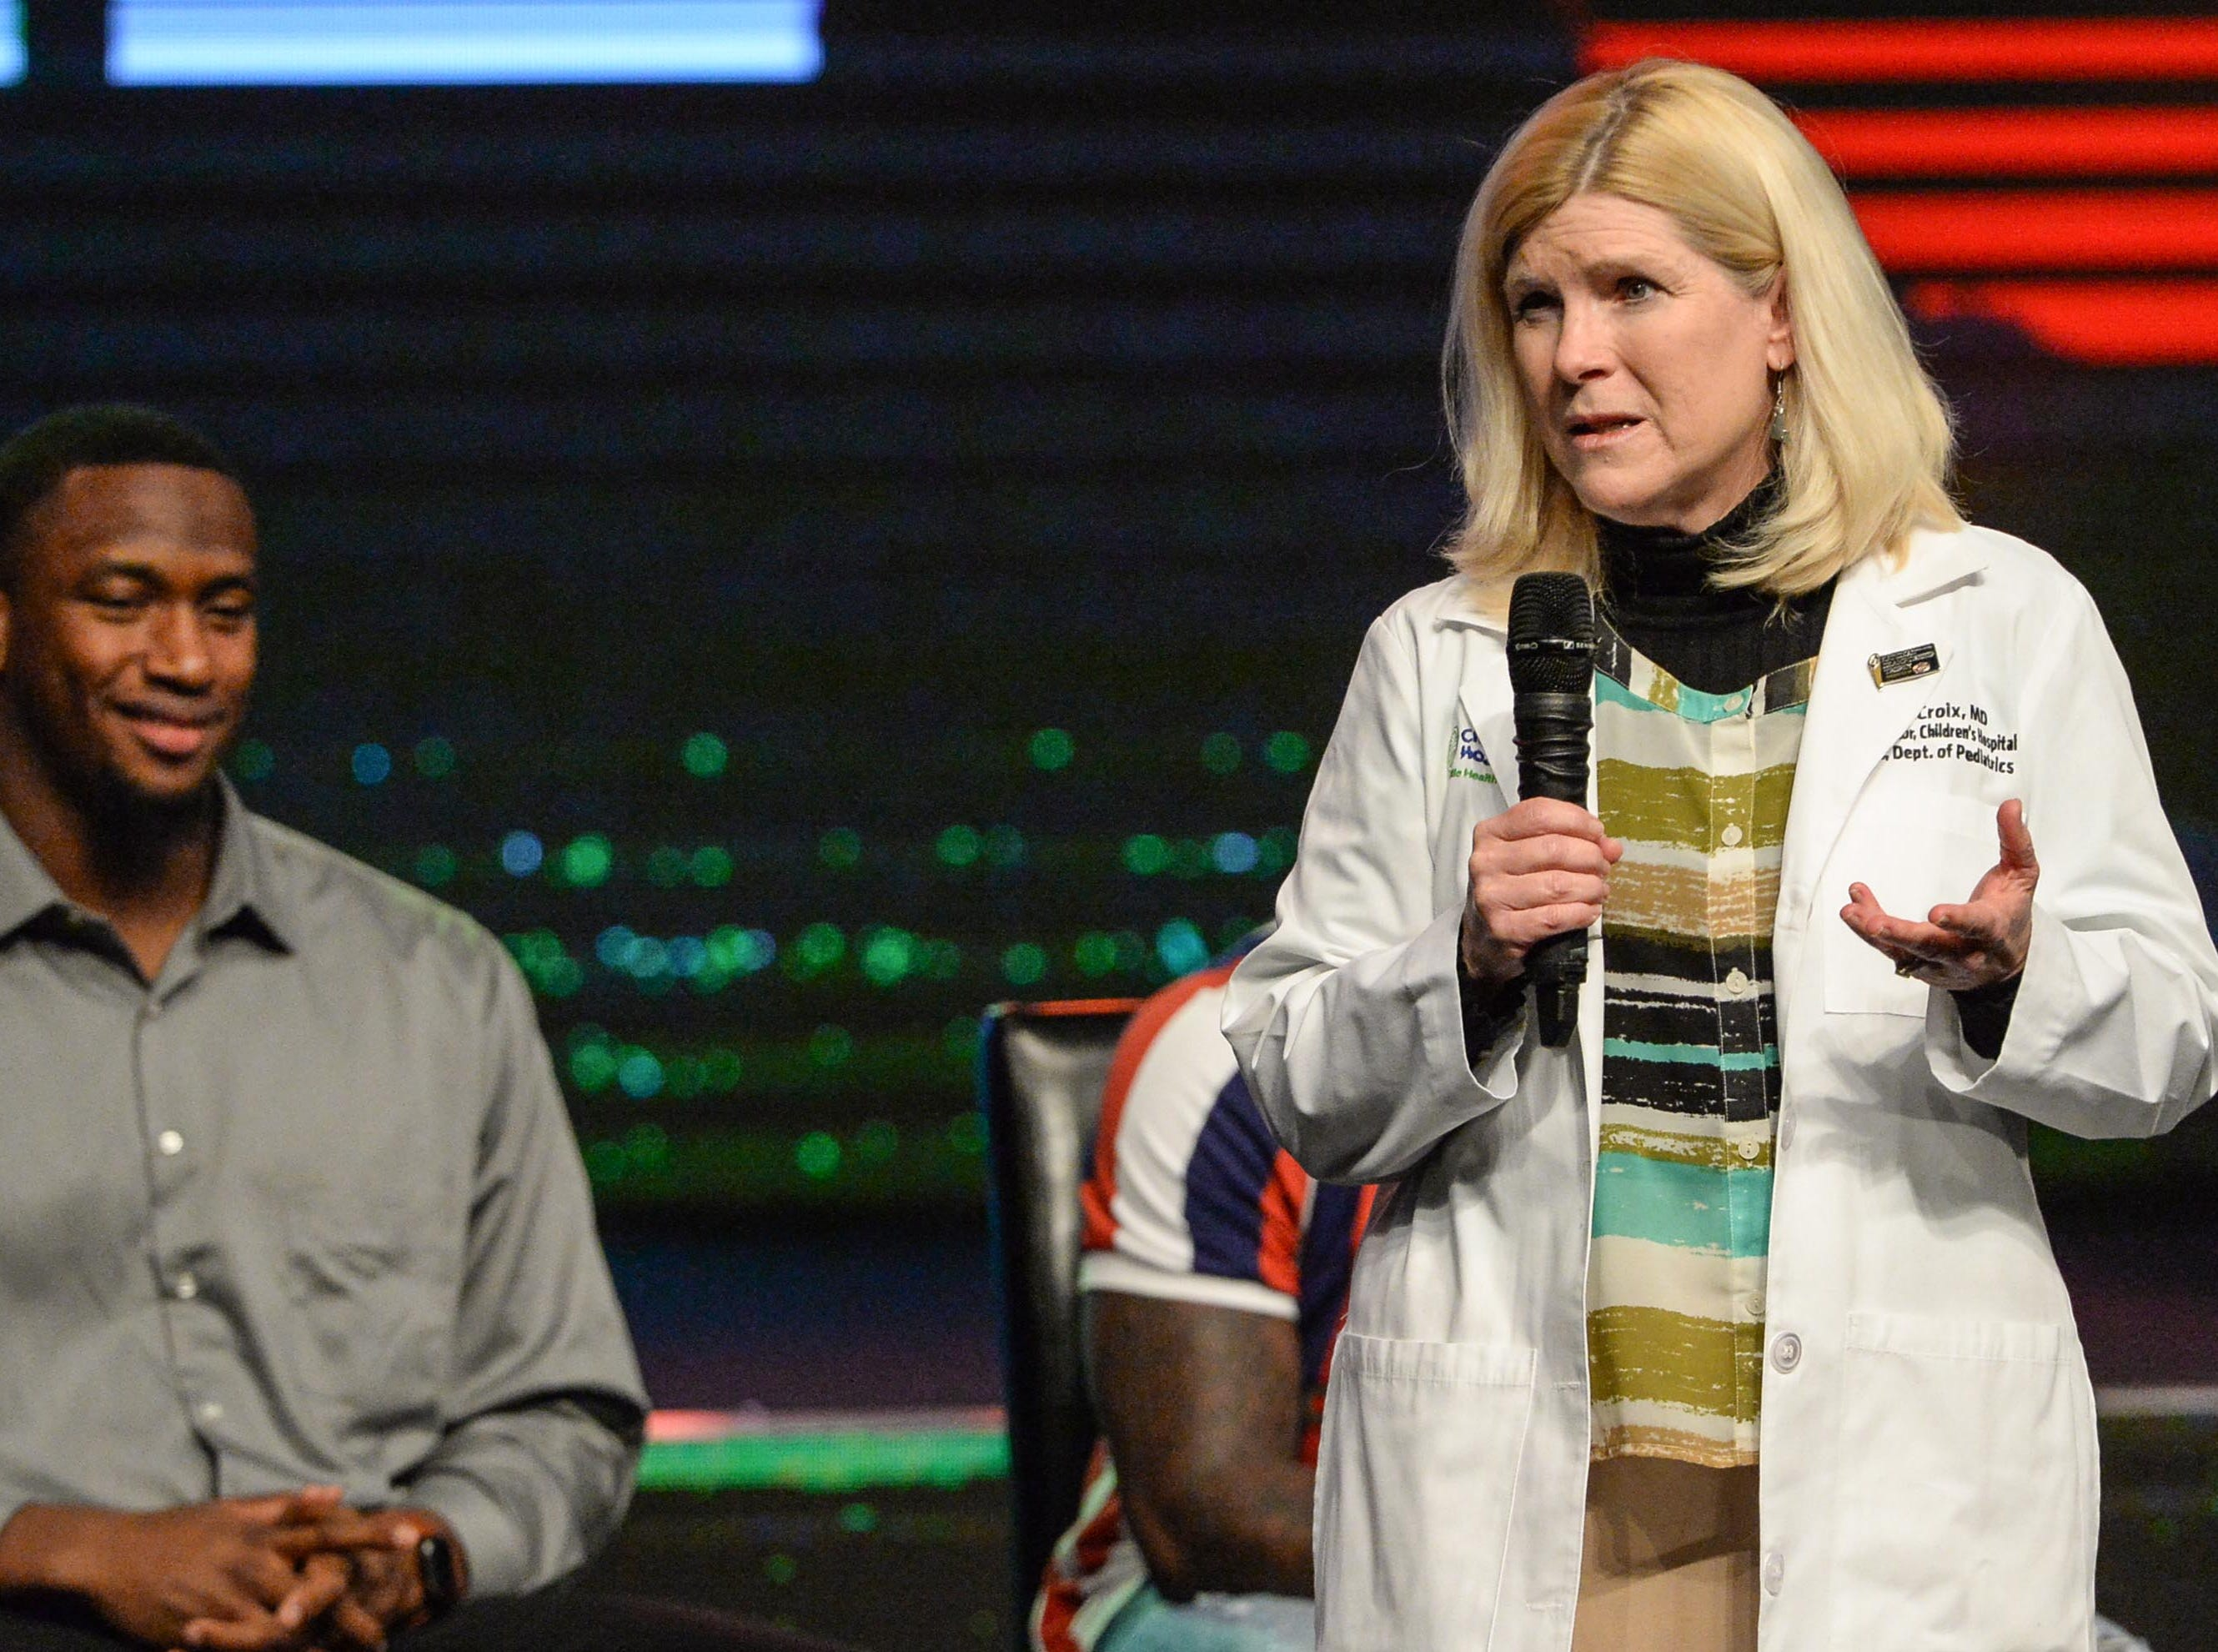 Dr. Robin LaCroix, medical director of Children's Hospital of PRISMA speaks near Clelin Ferrell and Deebo Samuel, former Clemson Tigers and South Carolina Gamecocks football players, during the Coaches 4 Character event at Relentless Church in Greenville Tuesday.